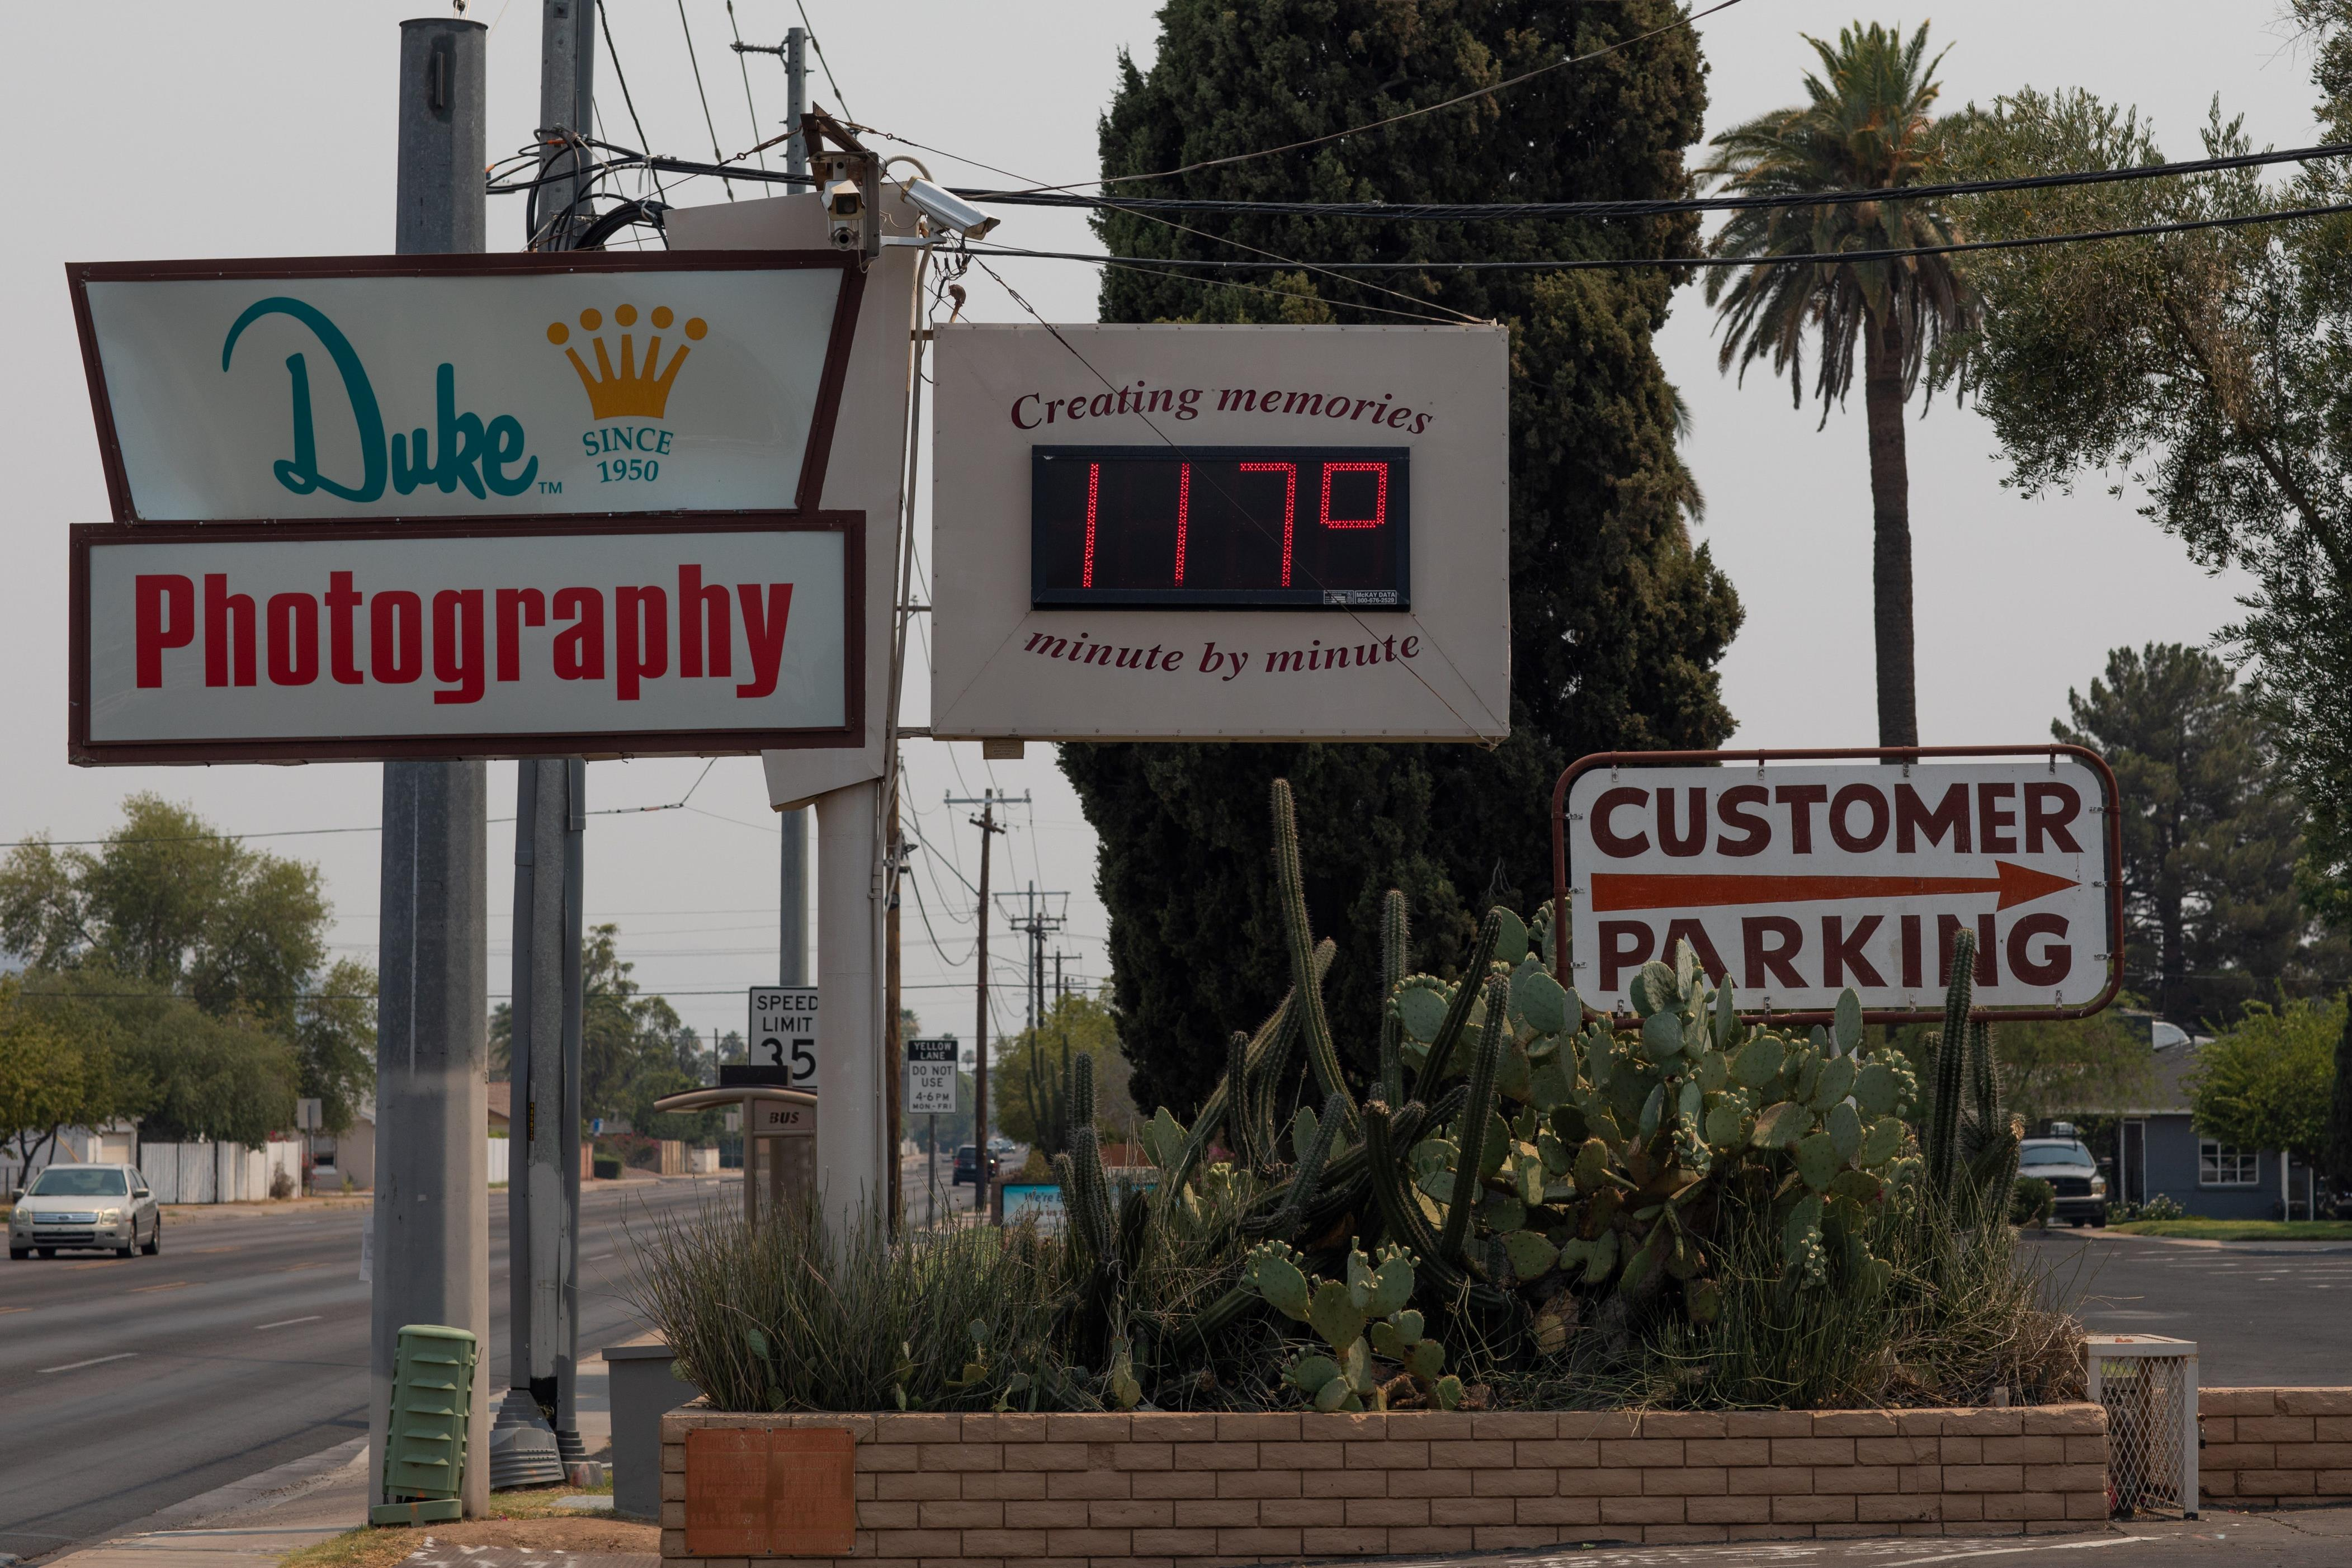 Fact check: Melted traffic lights, recycling bins, street signs were not caused by heat waves